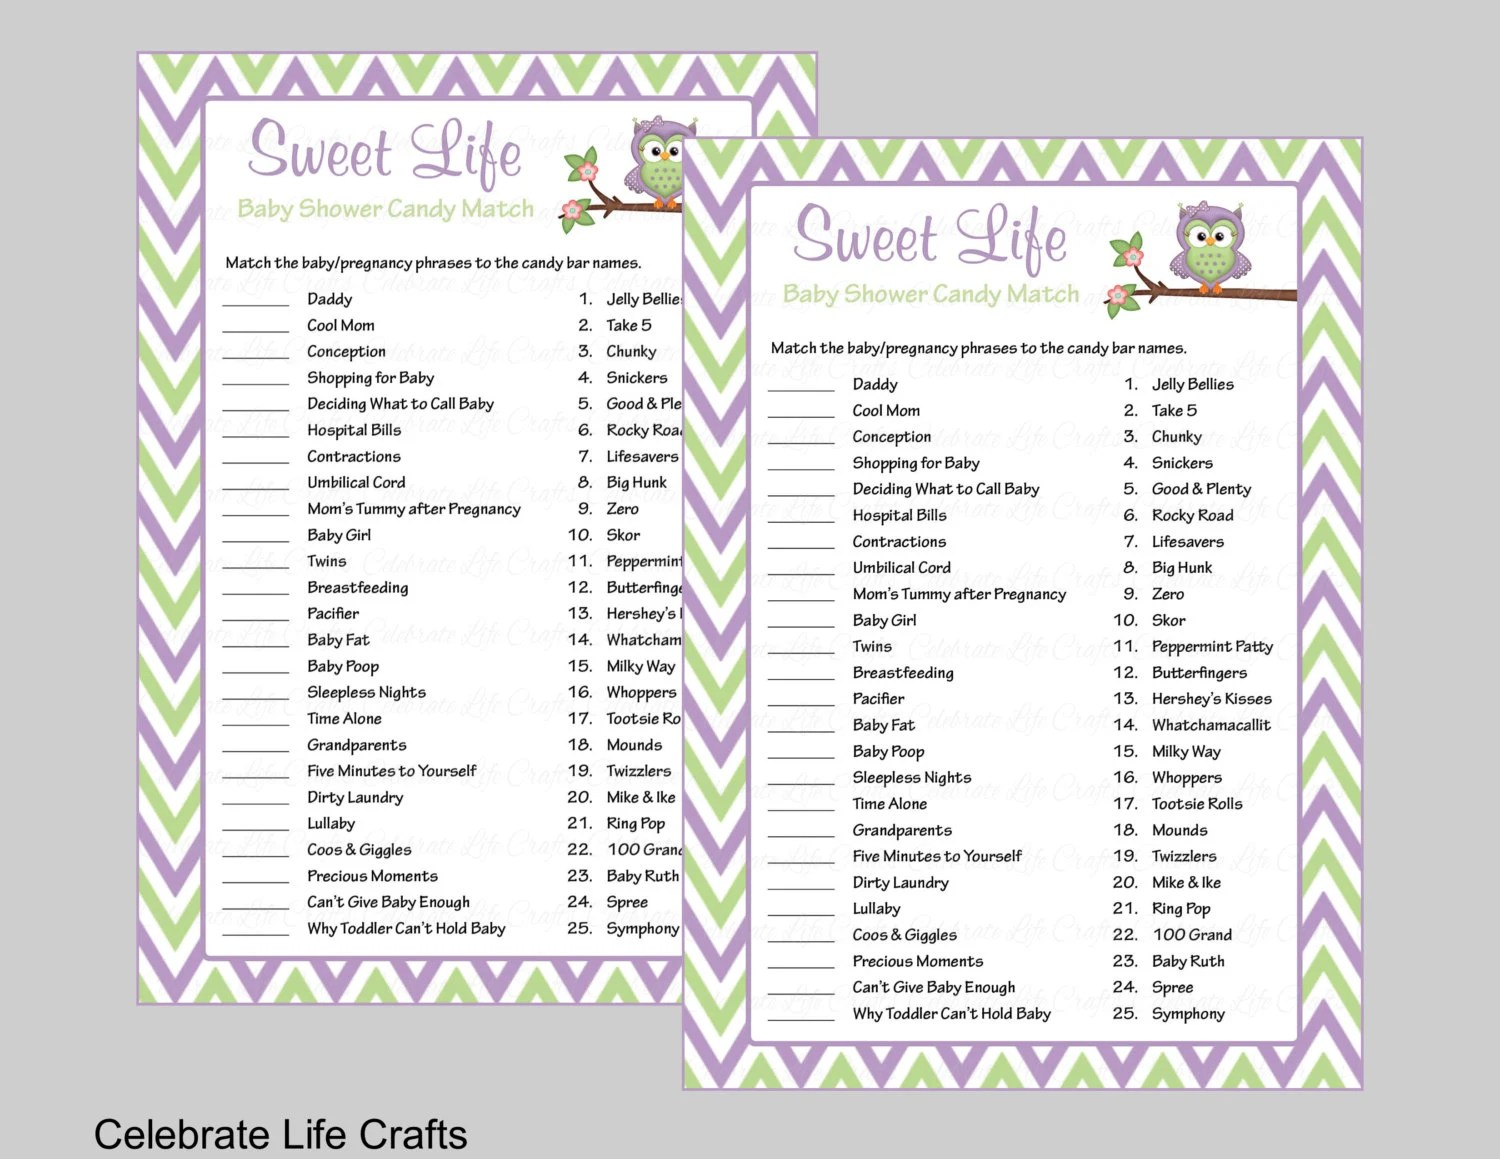 Baby Shower Sweet Life Candy Bar Match Game with Answer Key